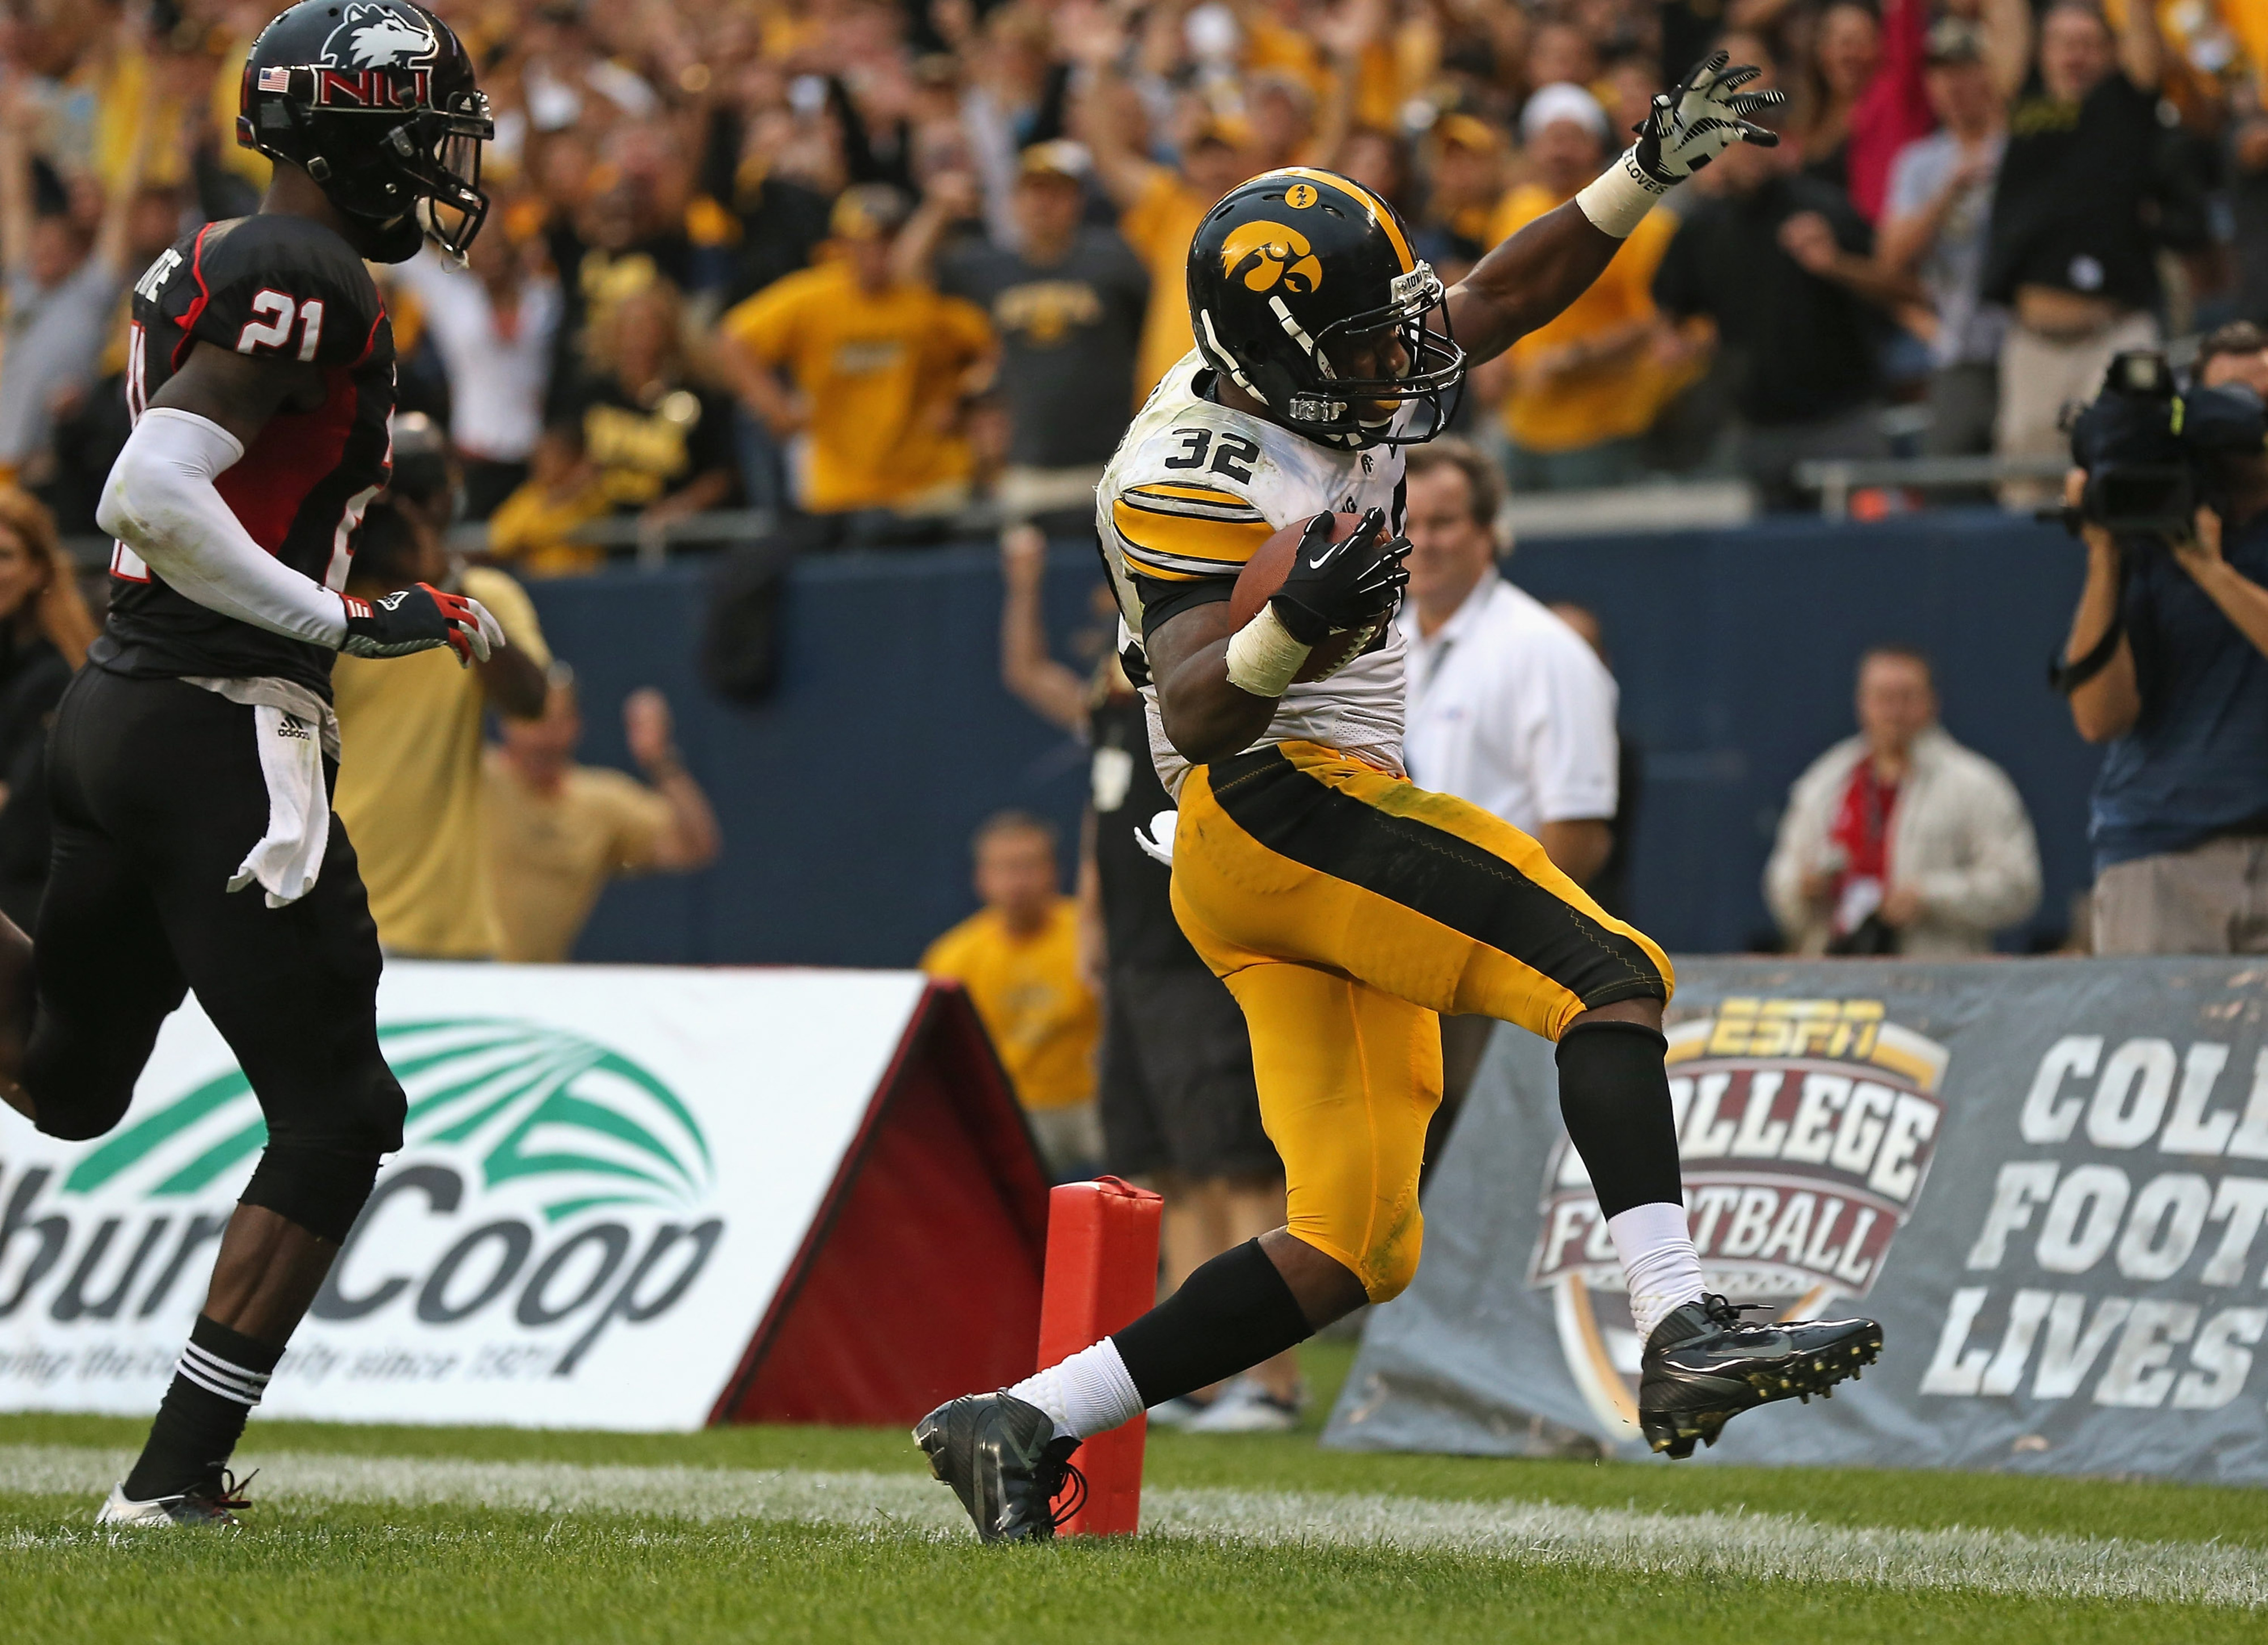 This was good.  Not much else in Iowa's 2012 season opener was.